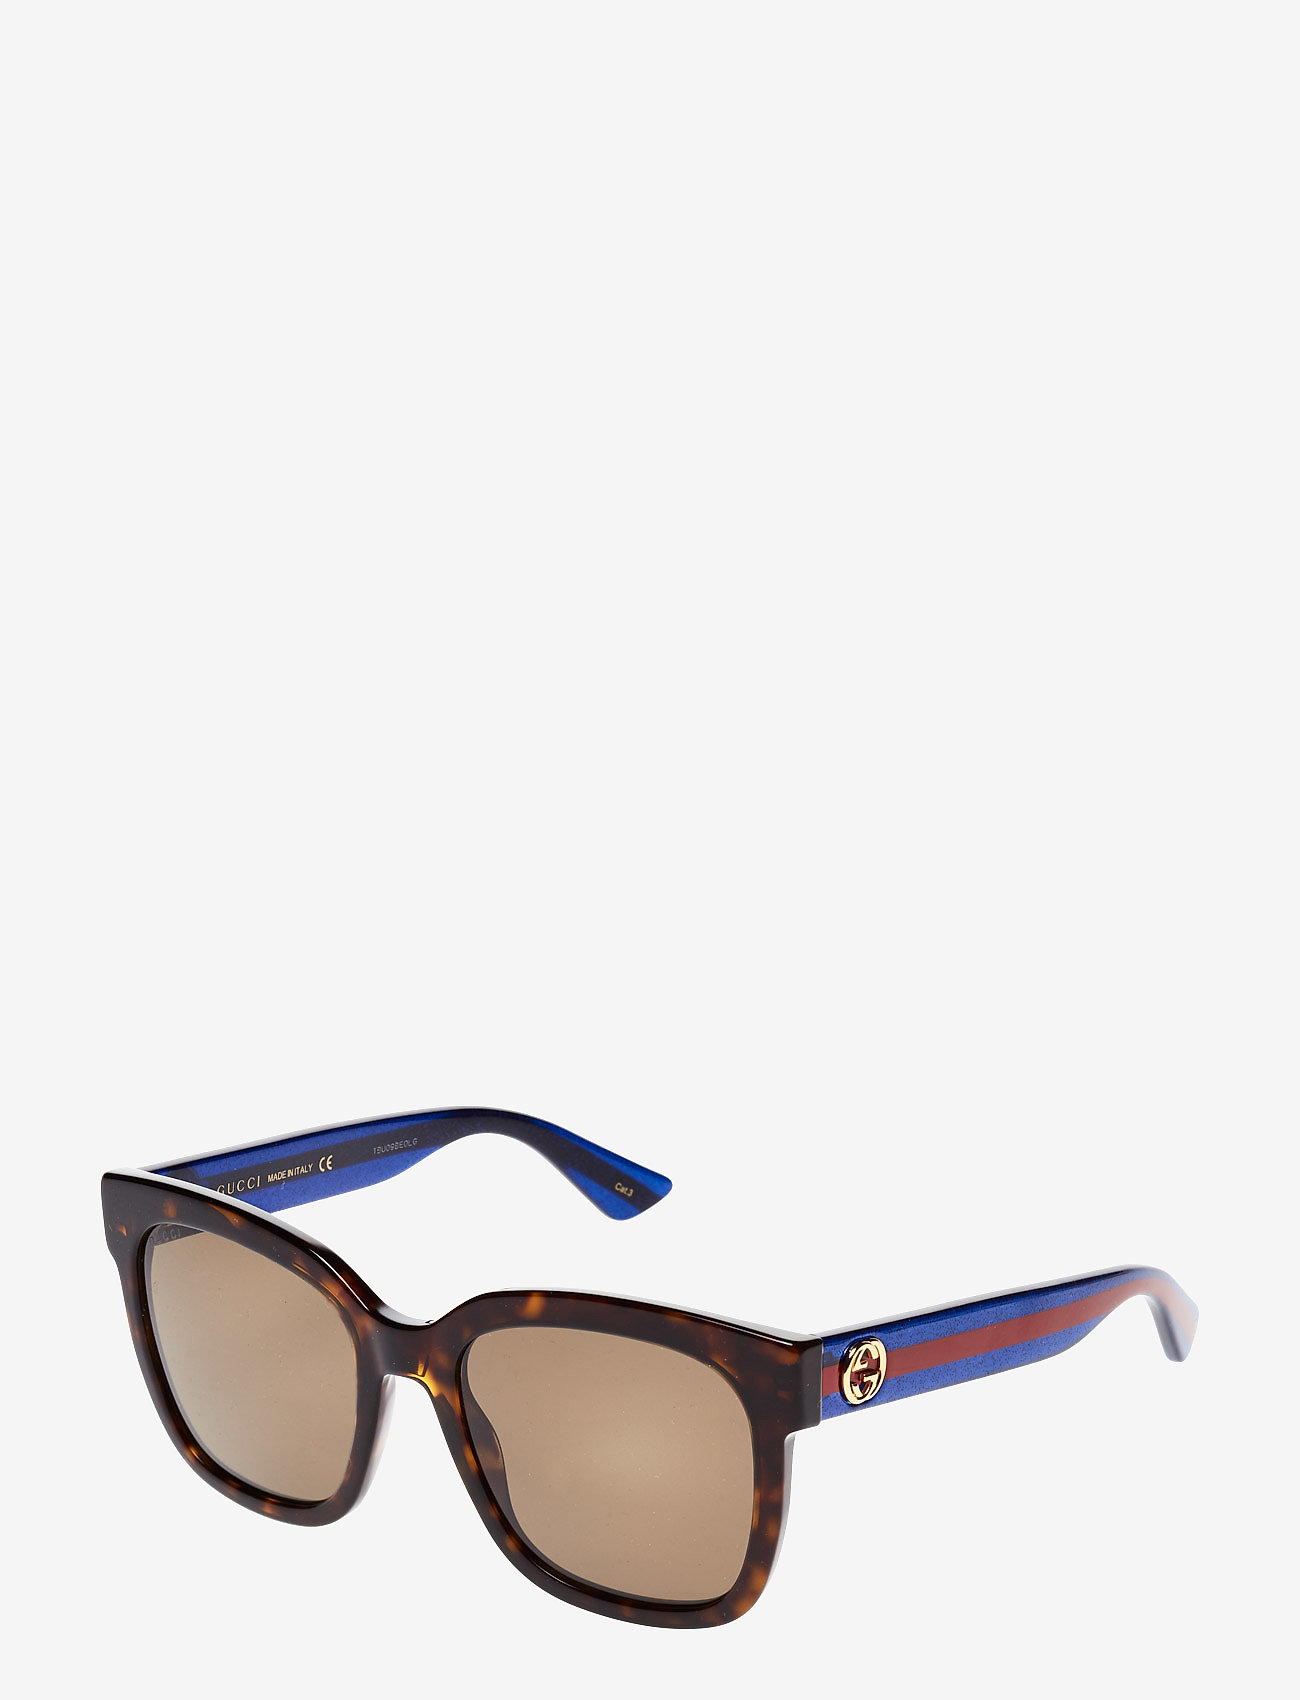 Gucci Sunglasses - GG0034S - d-shaped - avana-blue-brown - 1